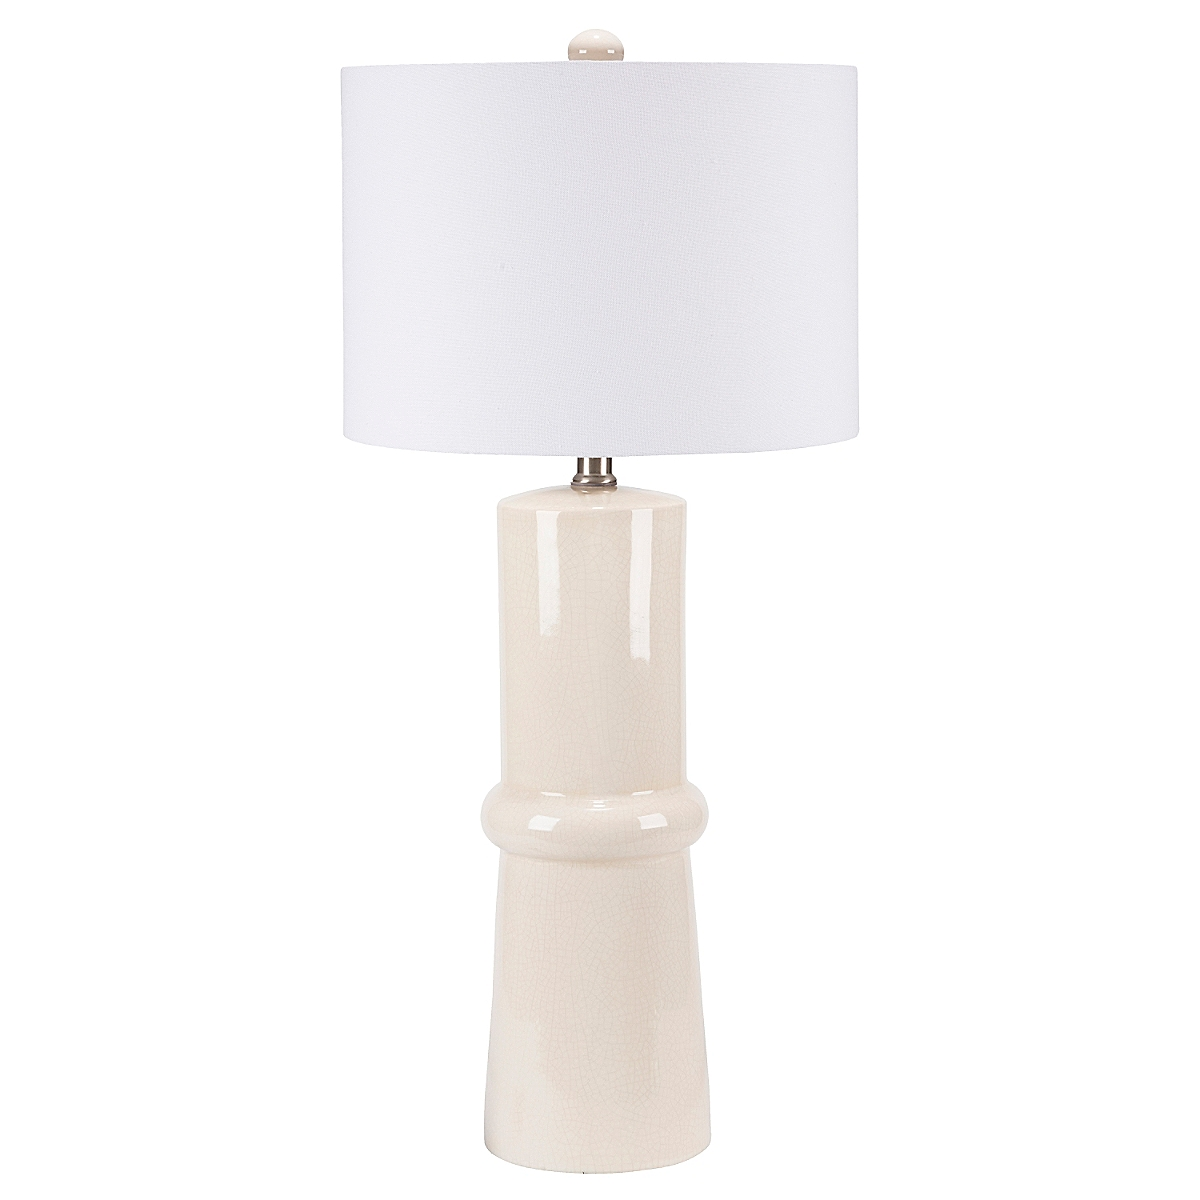 Reese Table Lamp - Cream